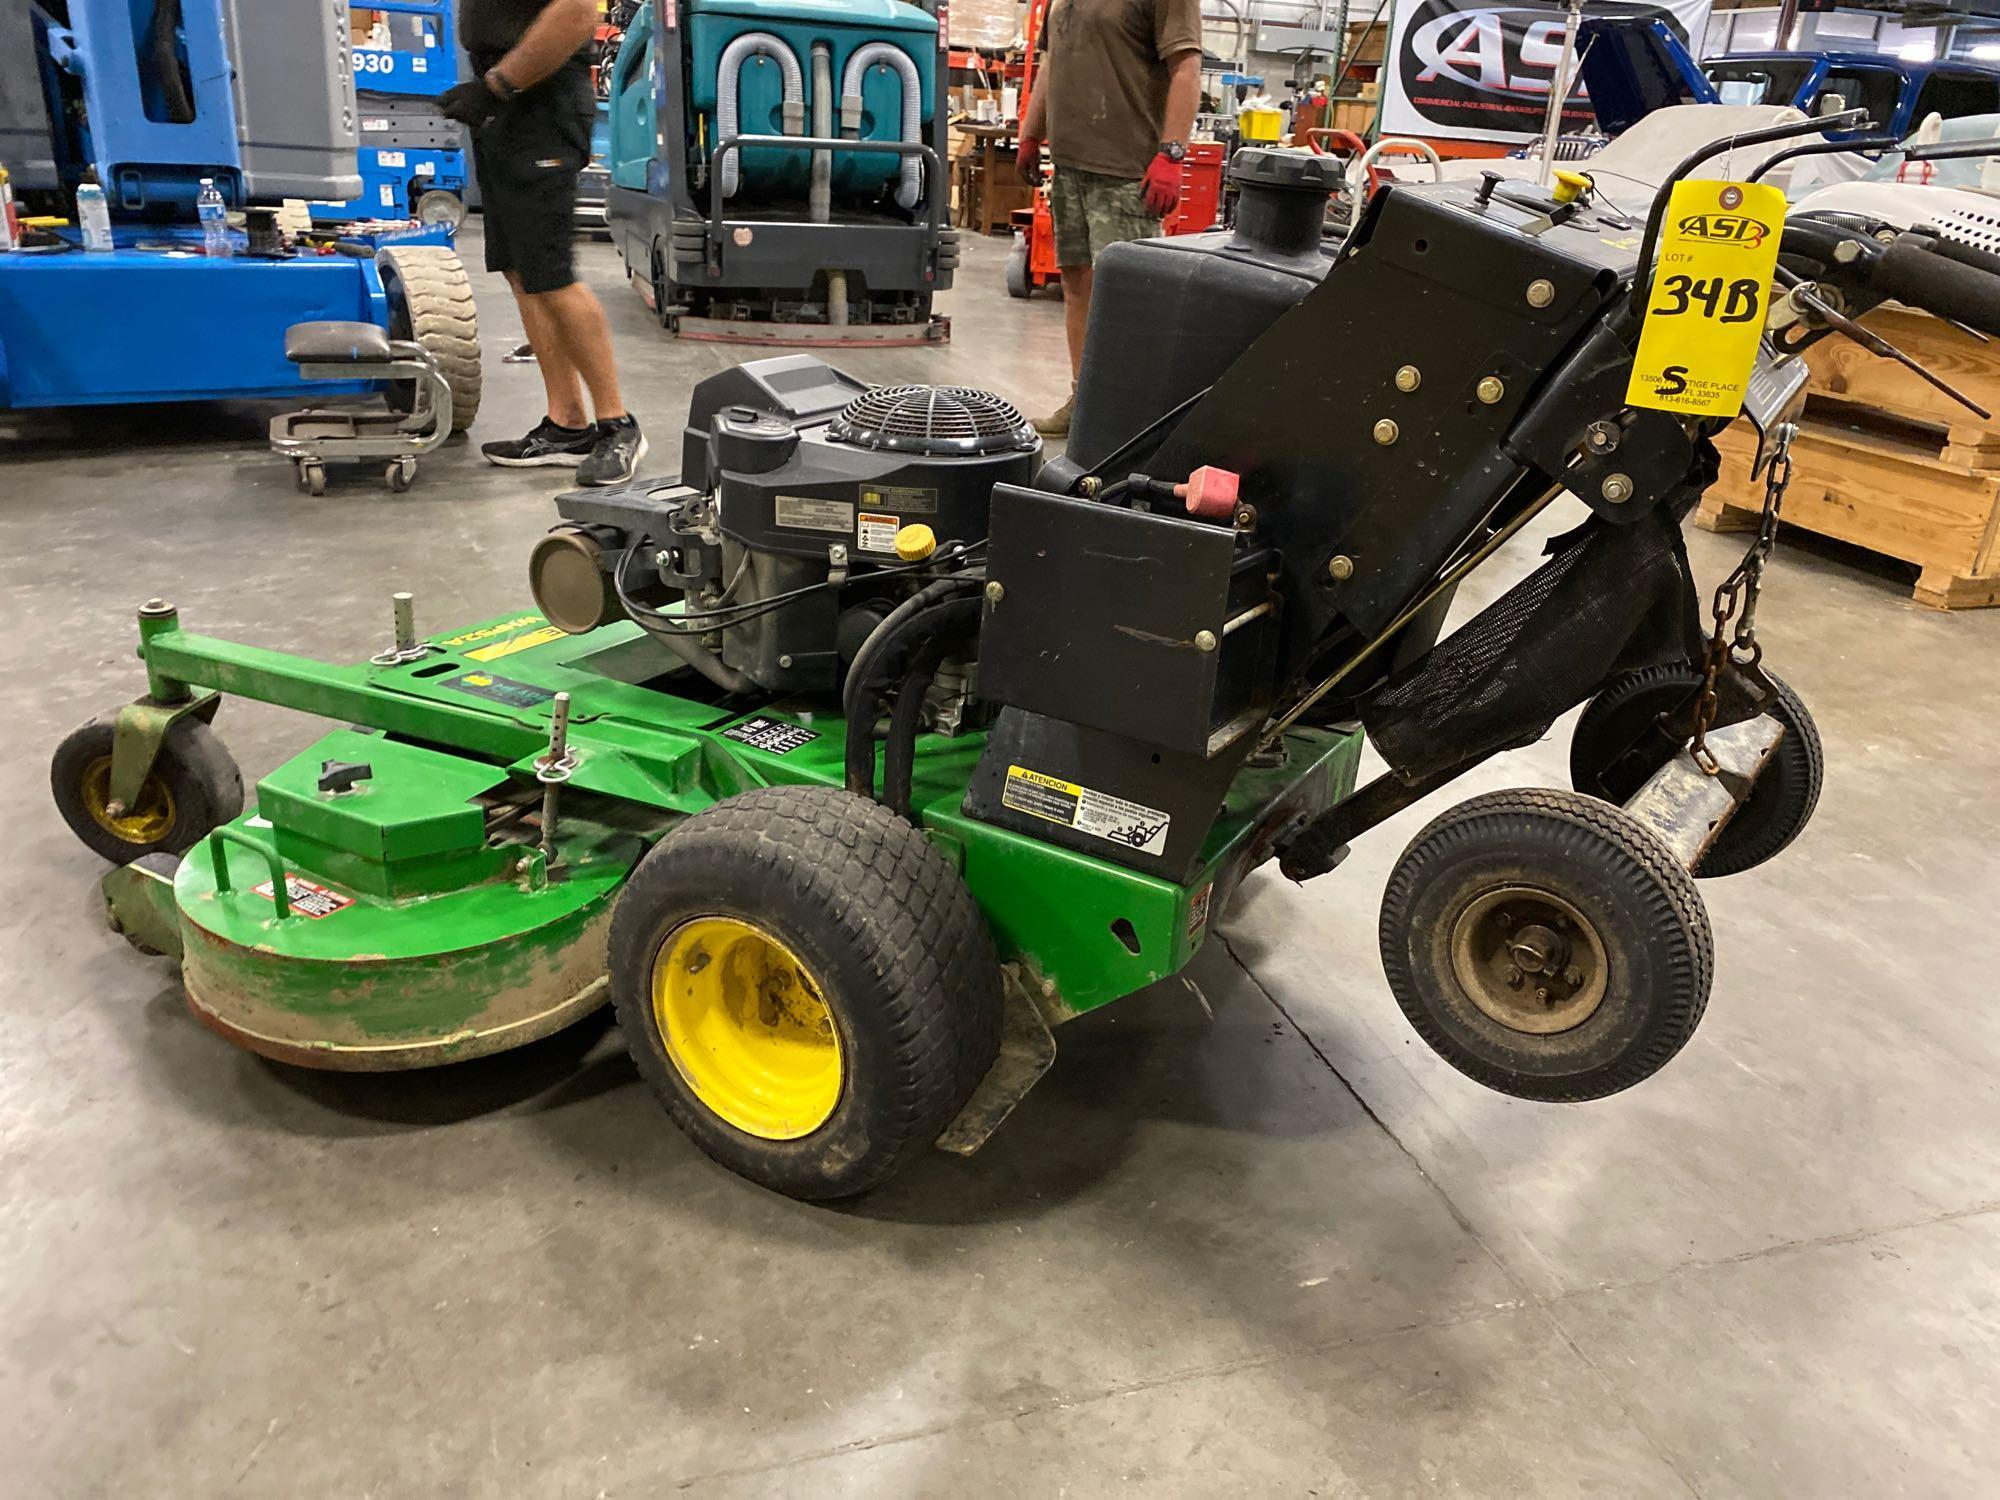 """JOHN DEERE WHP52A MOWER, 52"""" DECK, RUNS AND OPERATES - Image 3 of 7"""